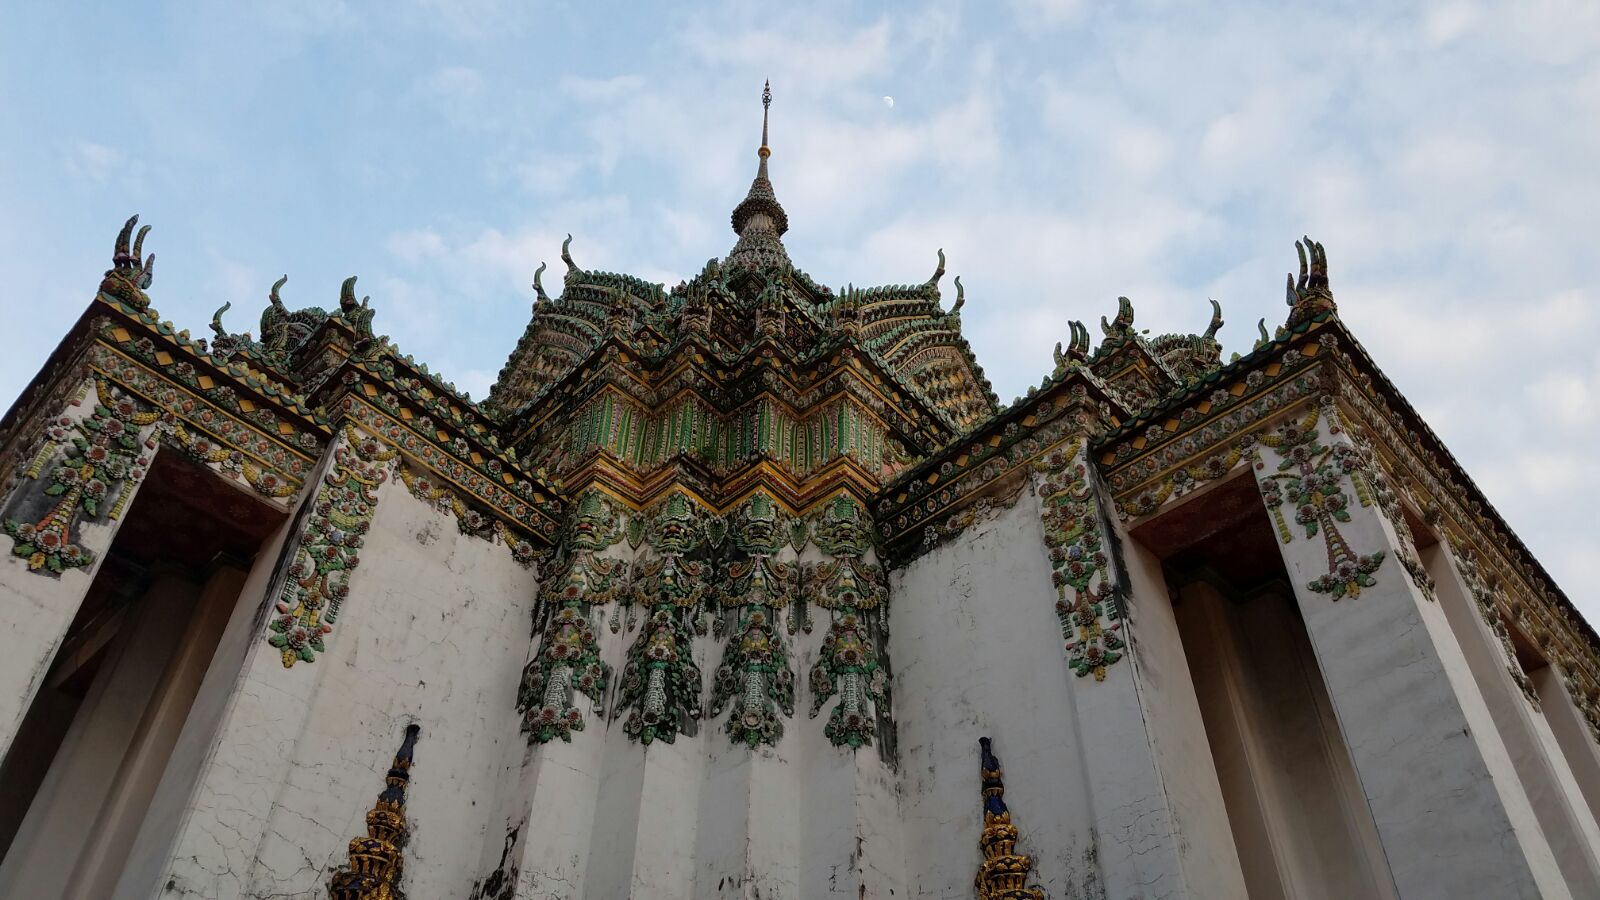 Favorite temple at Wat Pho